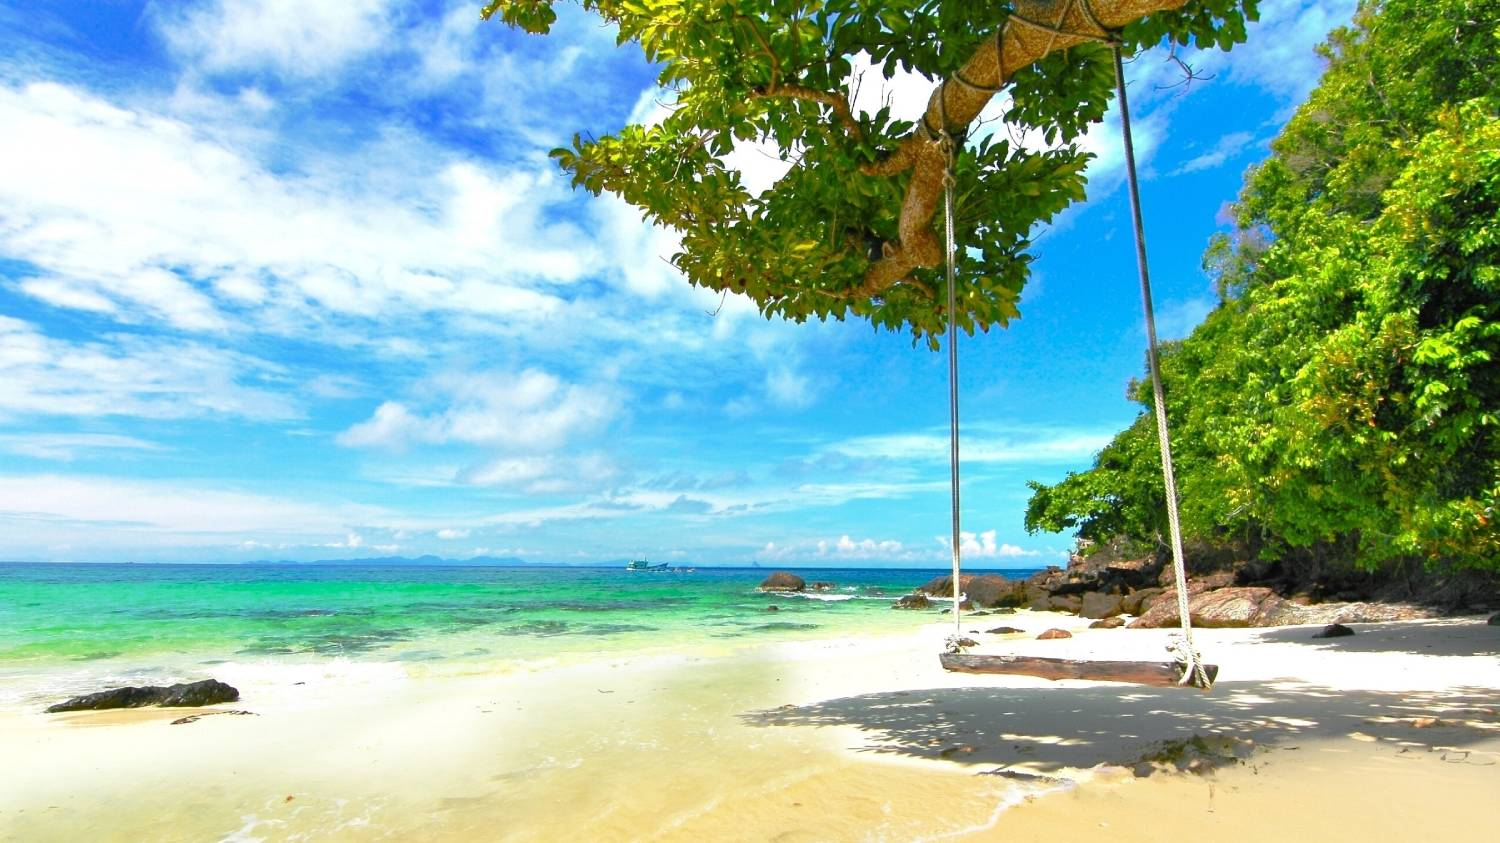 Phuket - The Best Places To Visit In Thailand